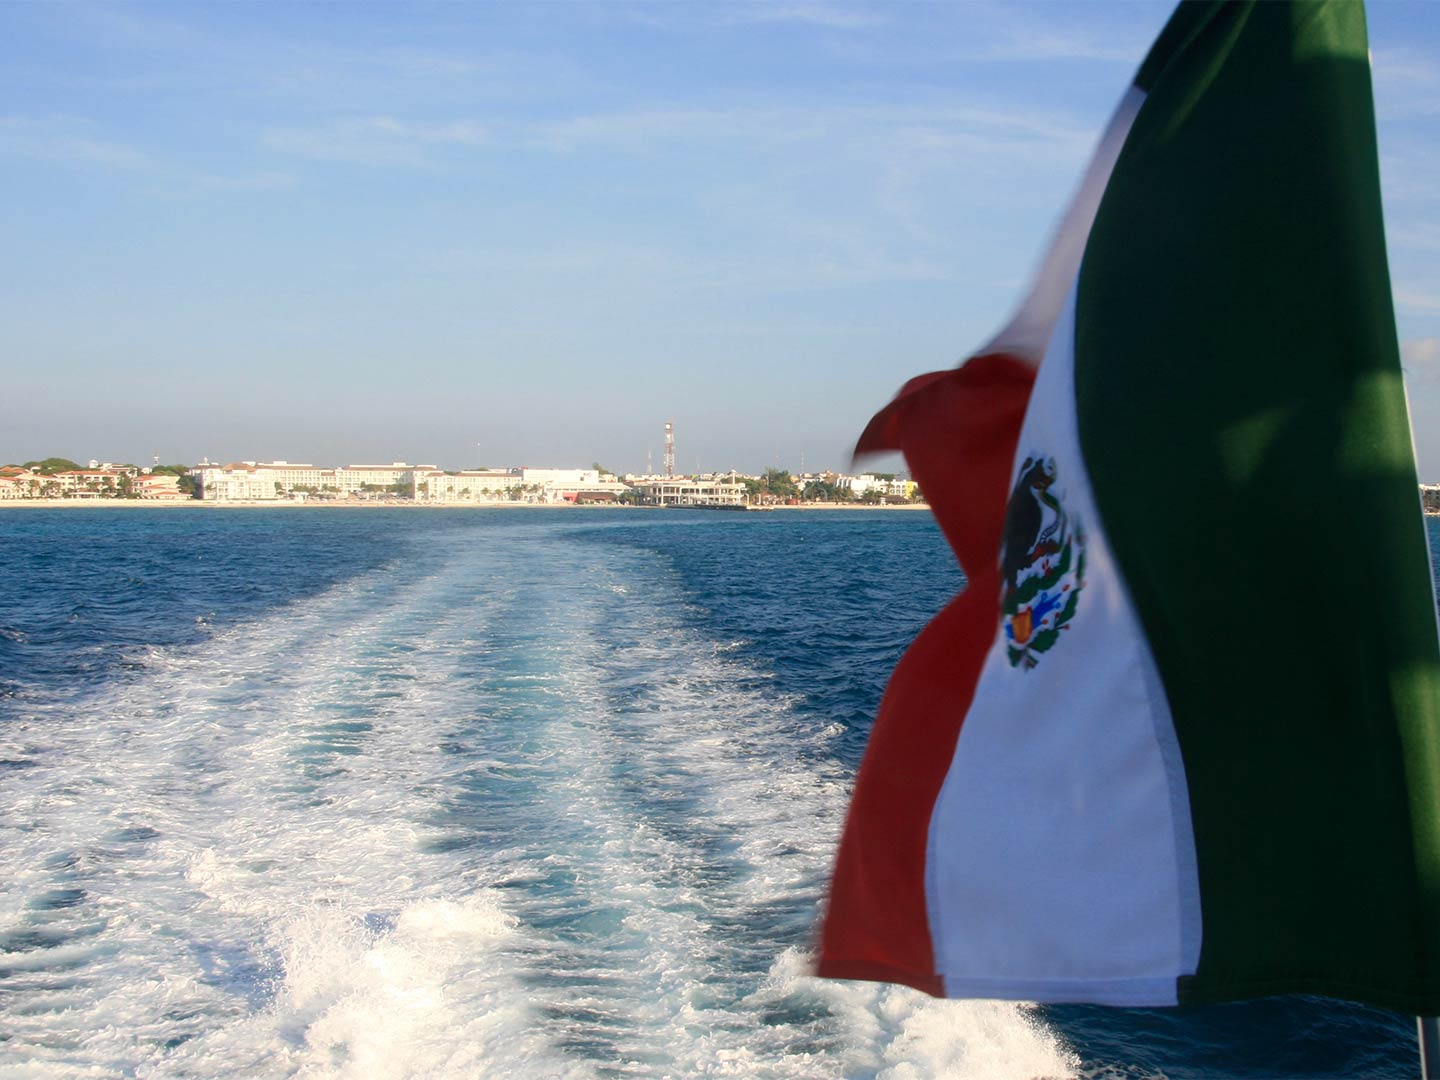 A Mexican flag flutters in the wind looking towards the coastline as a boat sails off into the sea